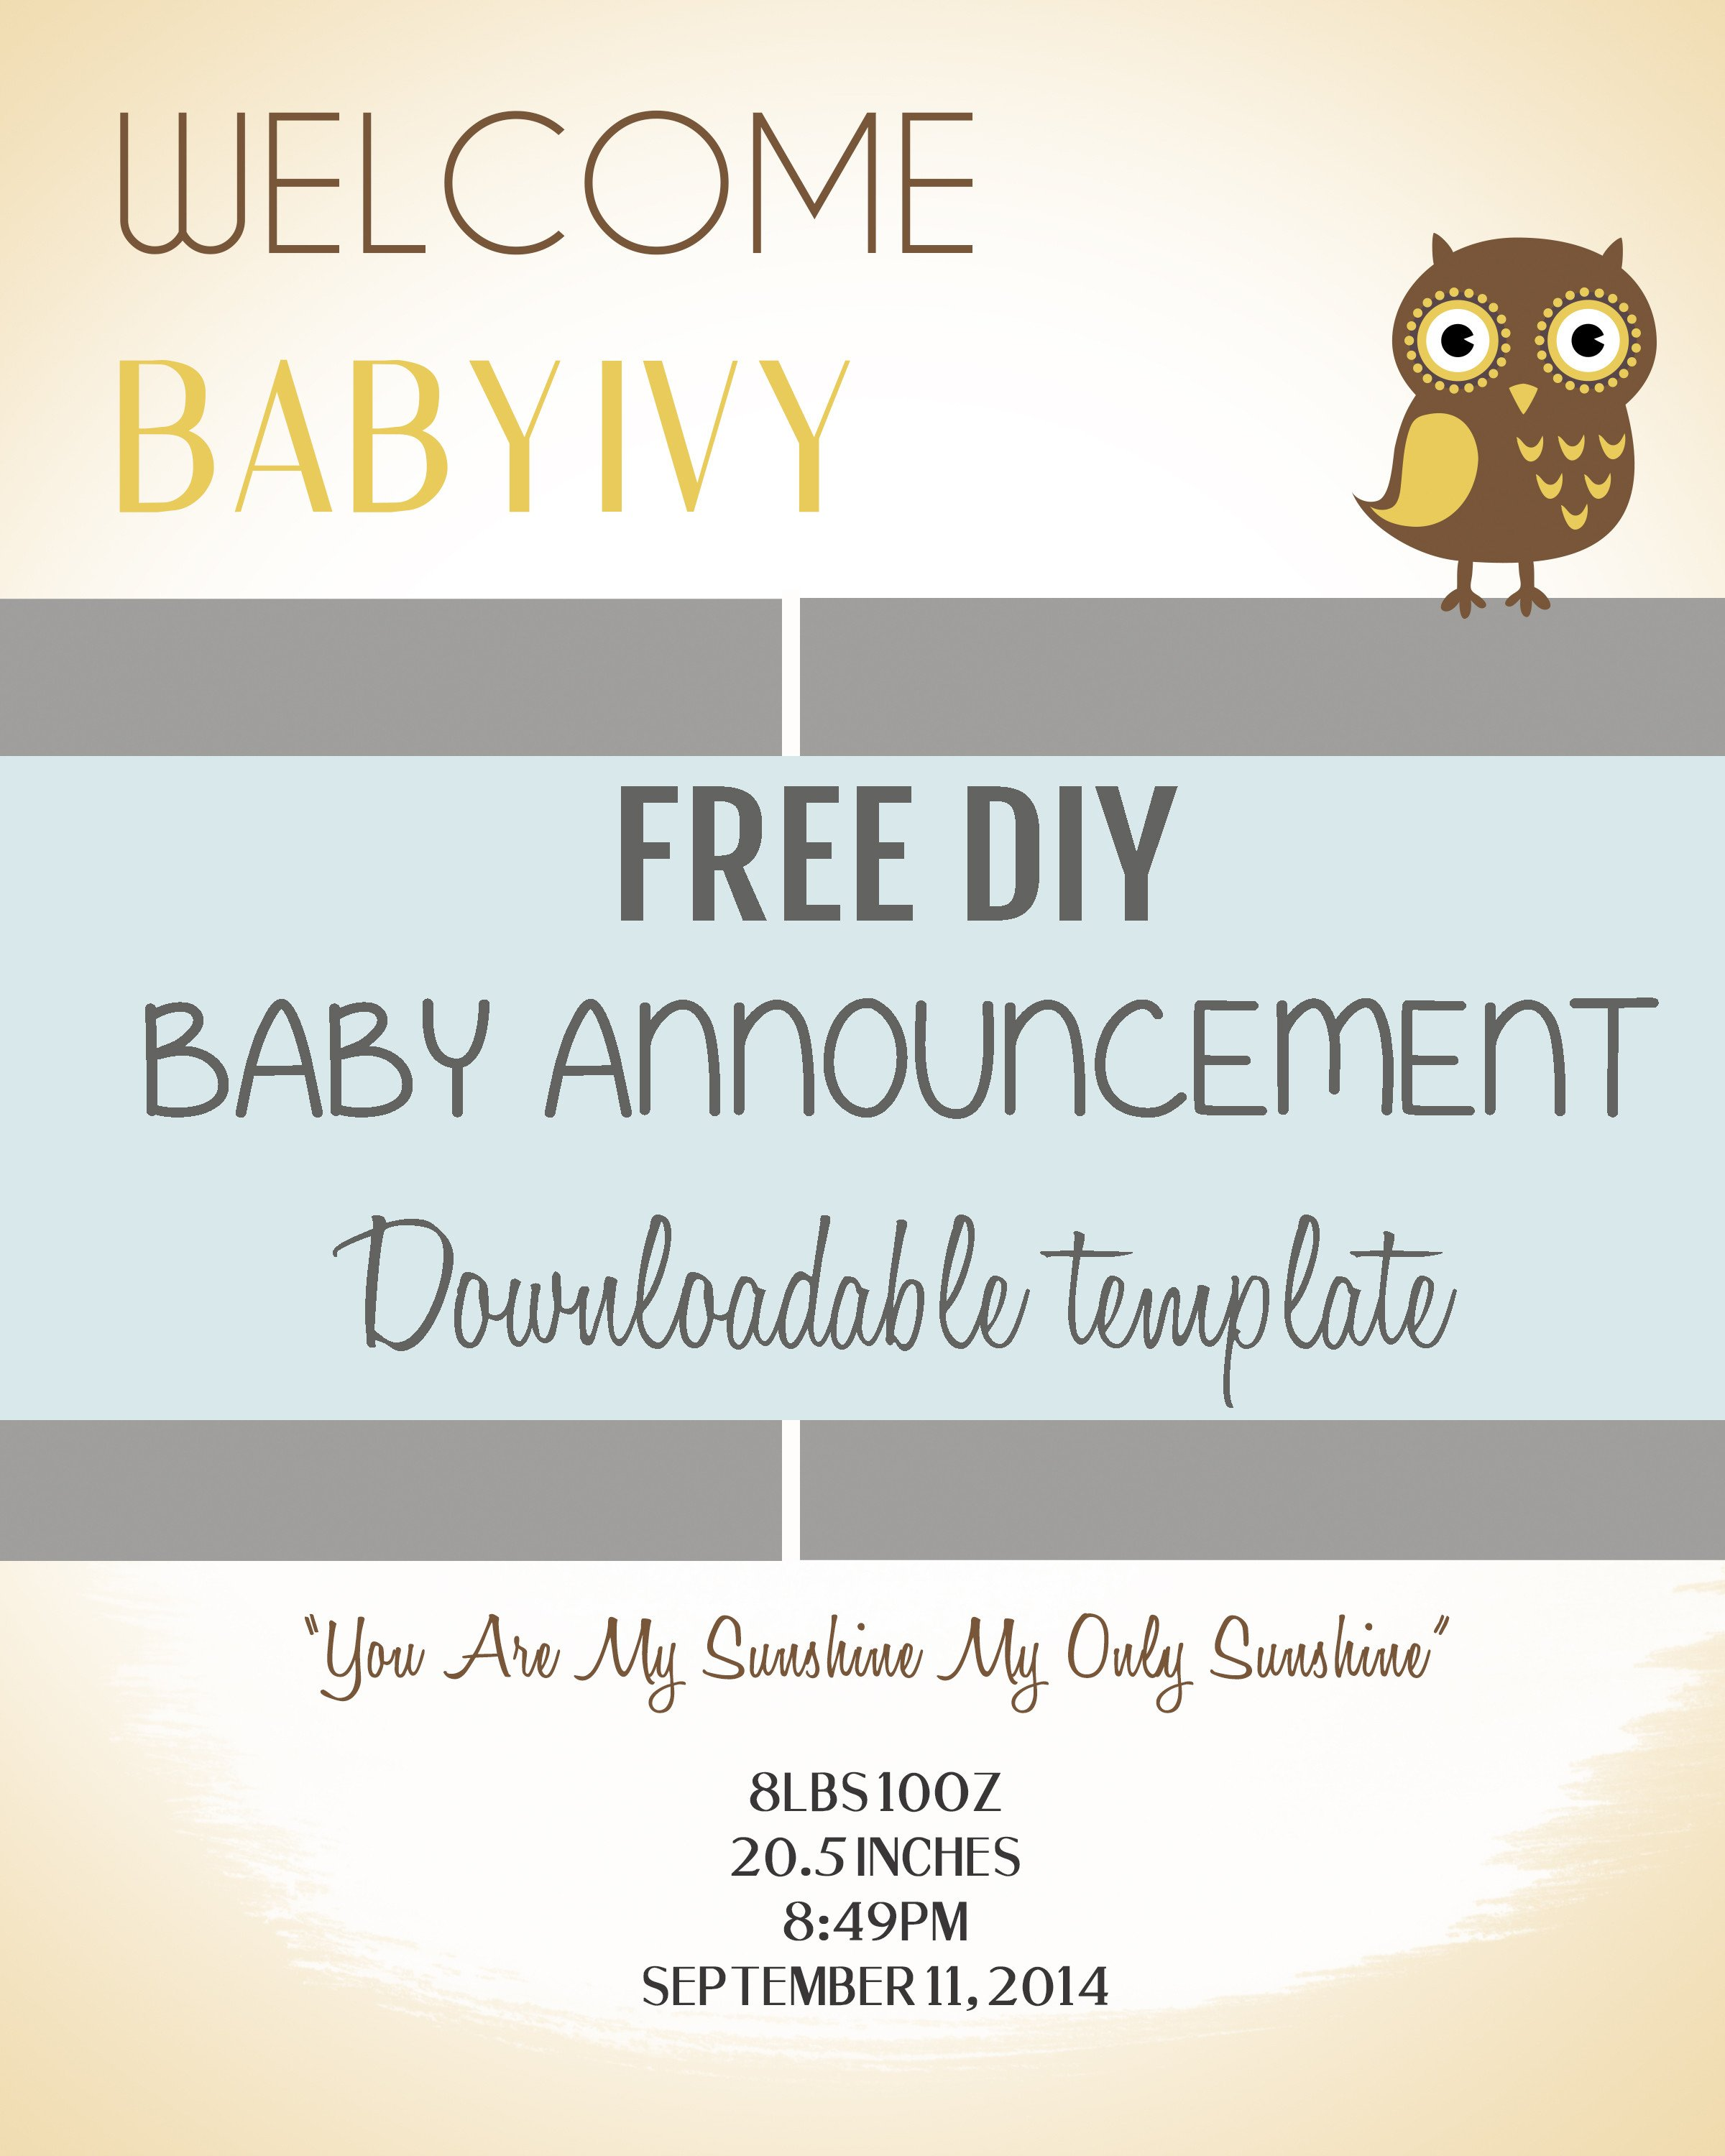 Free Pregnancy Announcement Templates Diy Baby Announcement Template Free Psd Download